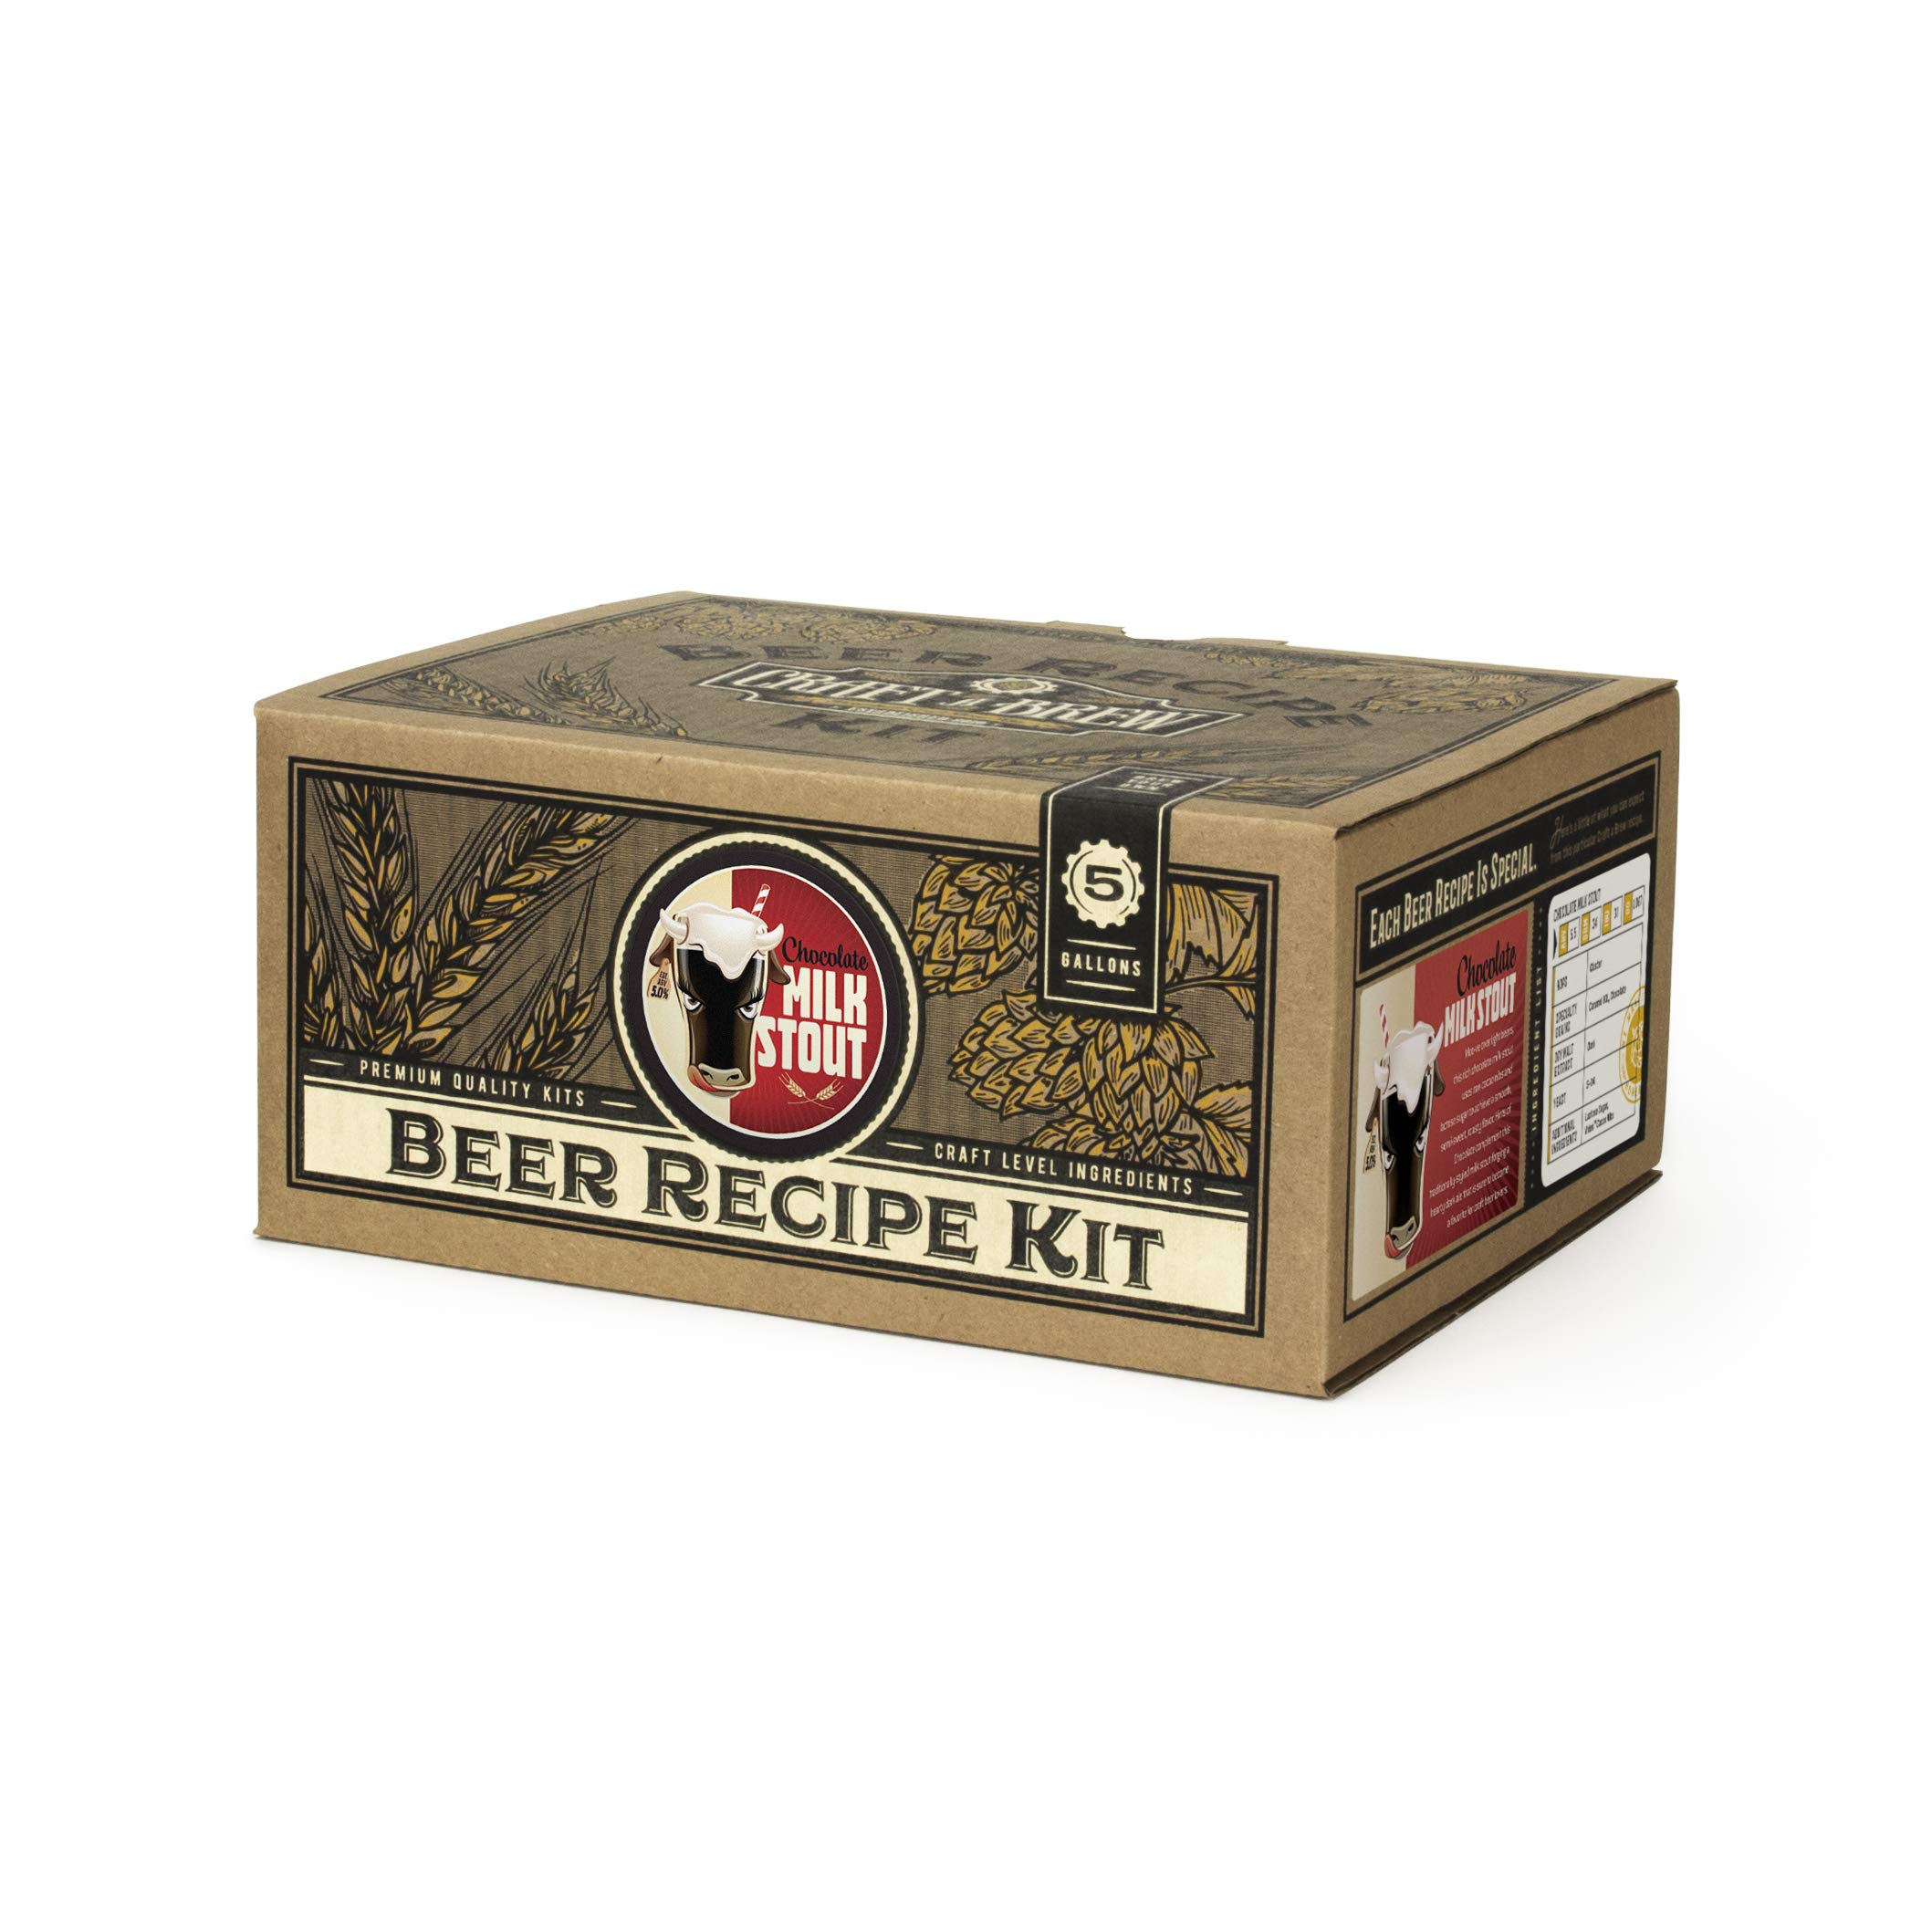 Home Brew Kit – Craft a Brew 5 Gallon Beer Recipe Chocolate Milk Stout Beer Kit – Make Your Own Beer with Home Brewing 5 Gallon Kits – Home Brewing Ingredient Kit